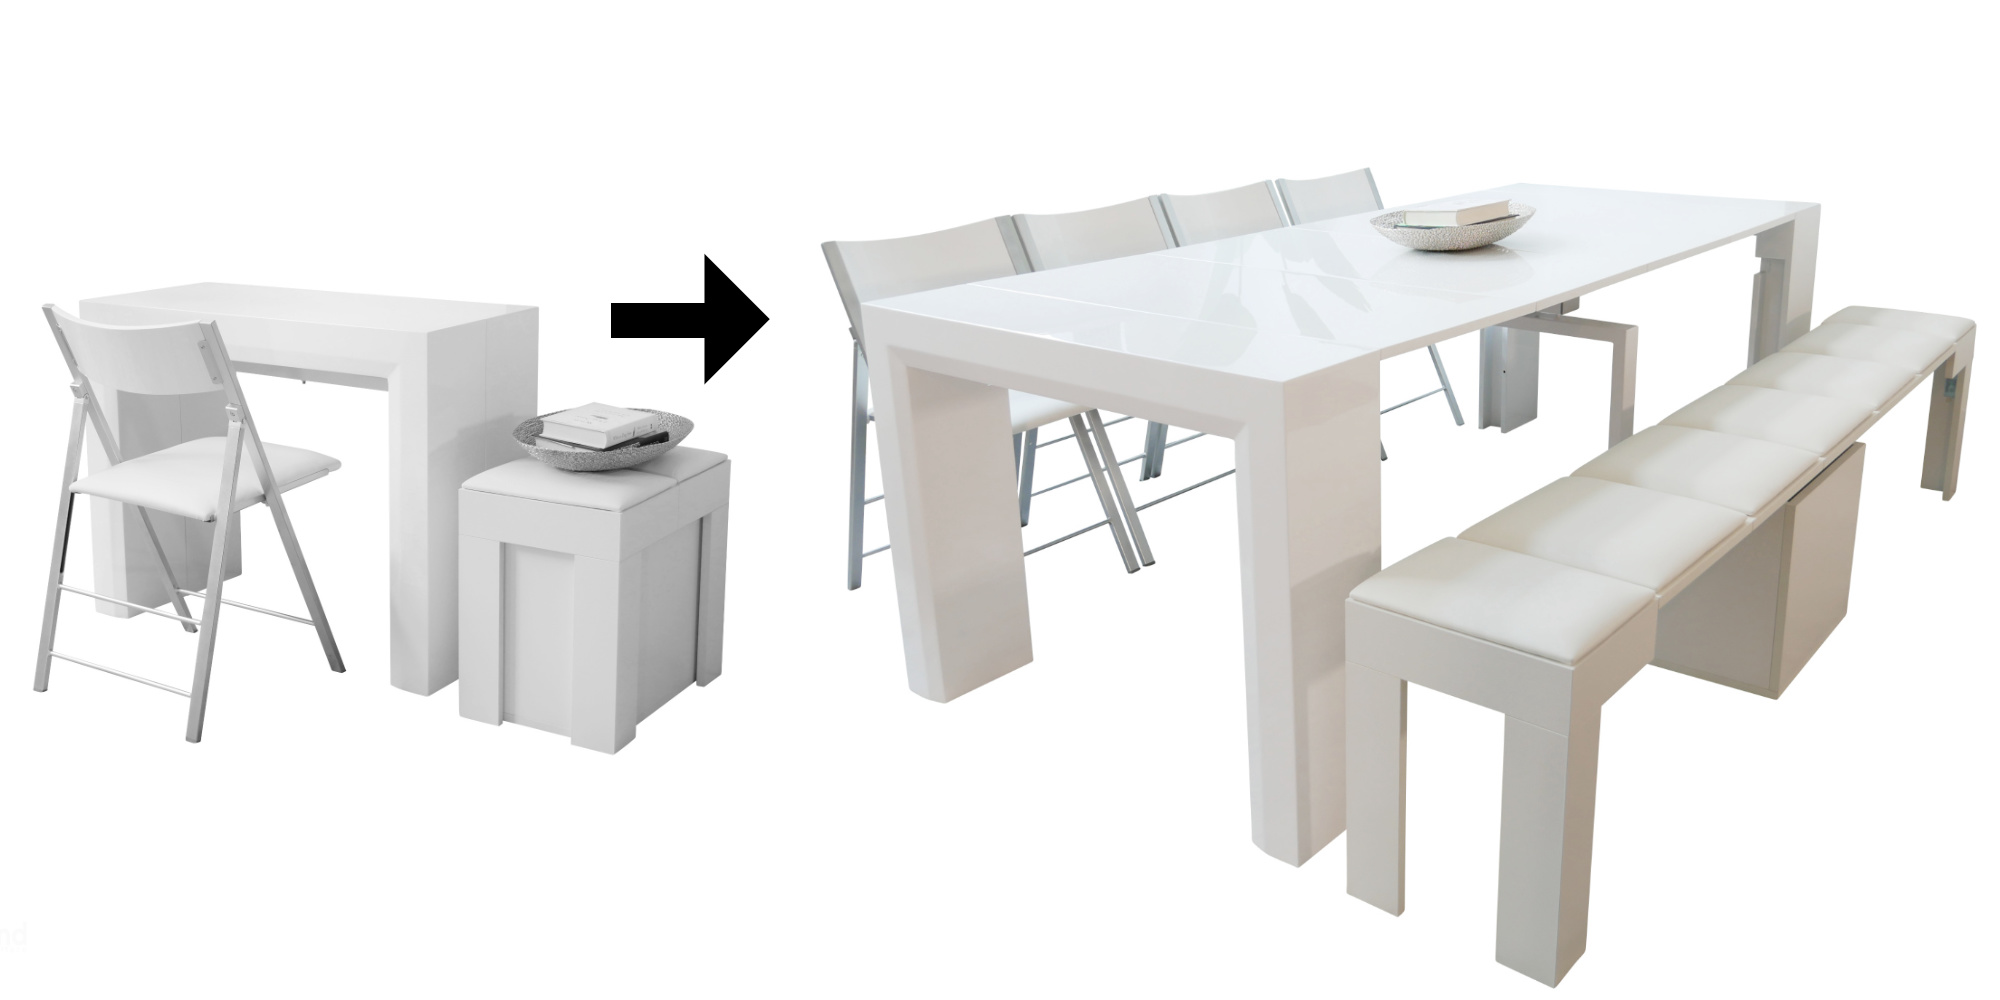 The ultimate space saving dining set deal with a junior giant extending console table and 4 nano chairs and a mini scatola